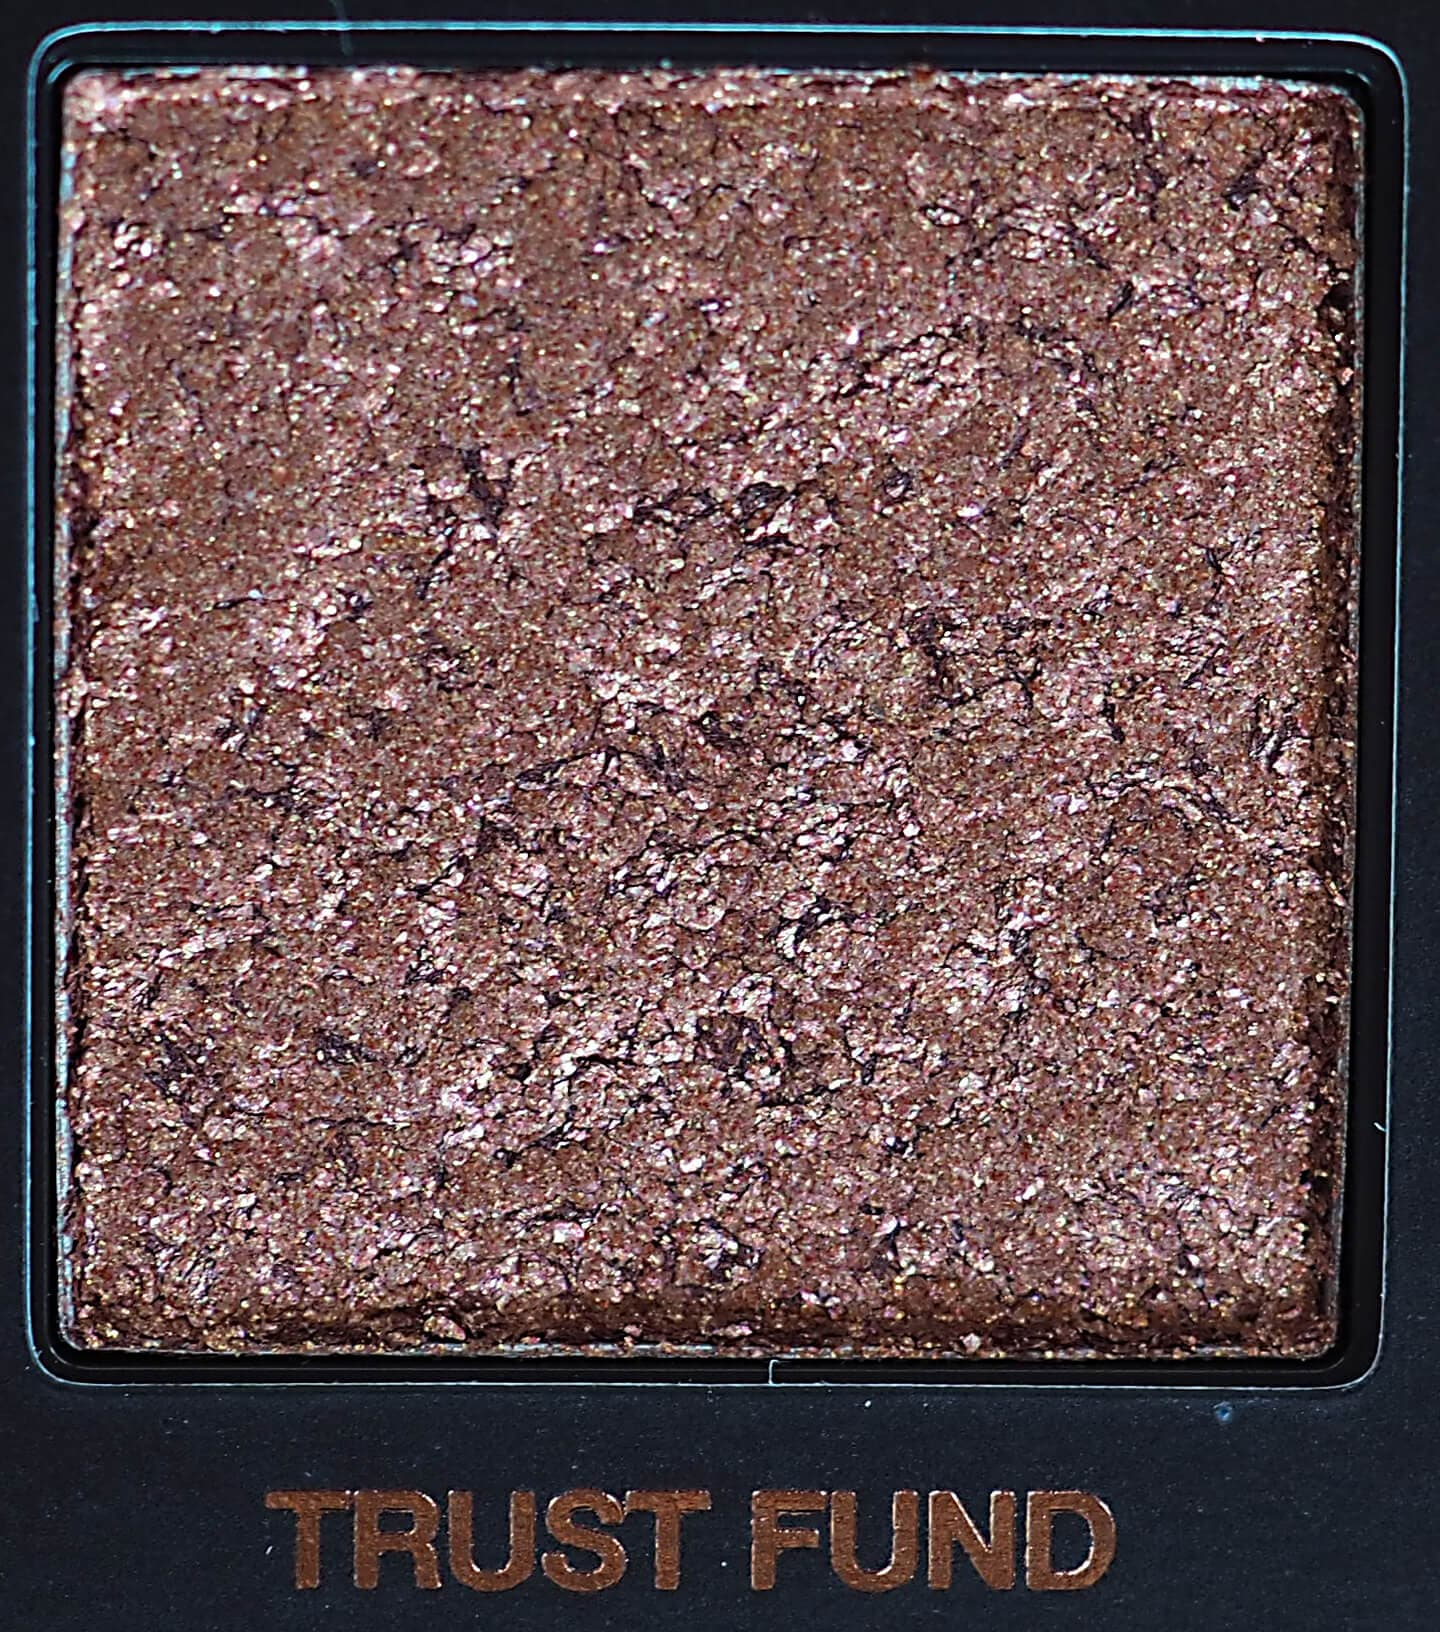 TRUST FUND HUDA ROSE GOLD EDITION